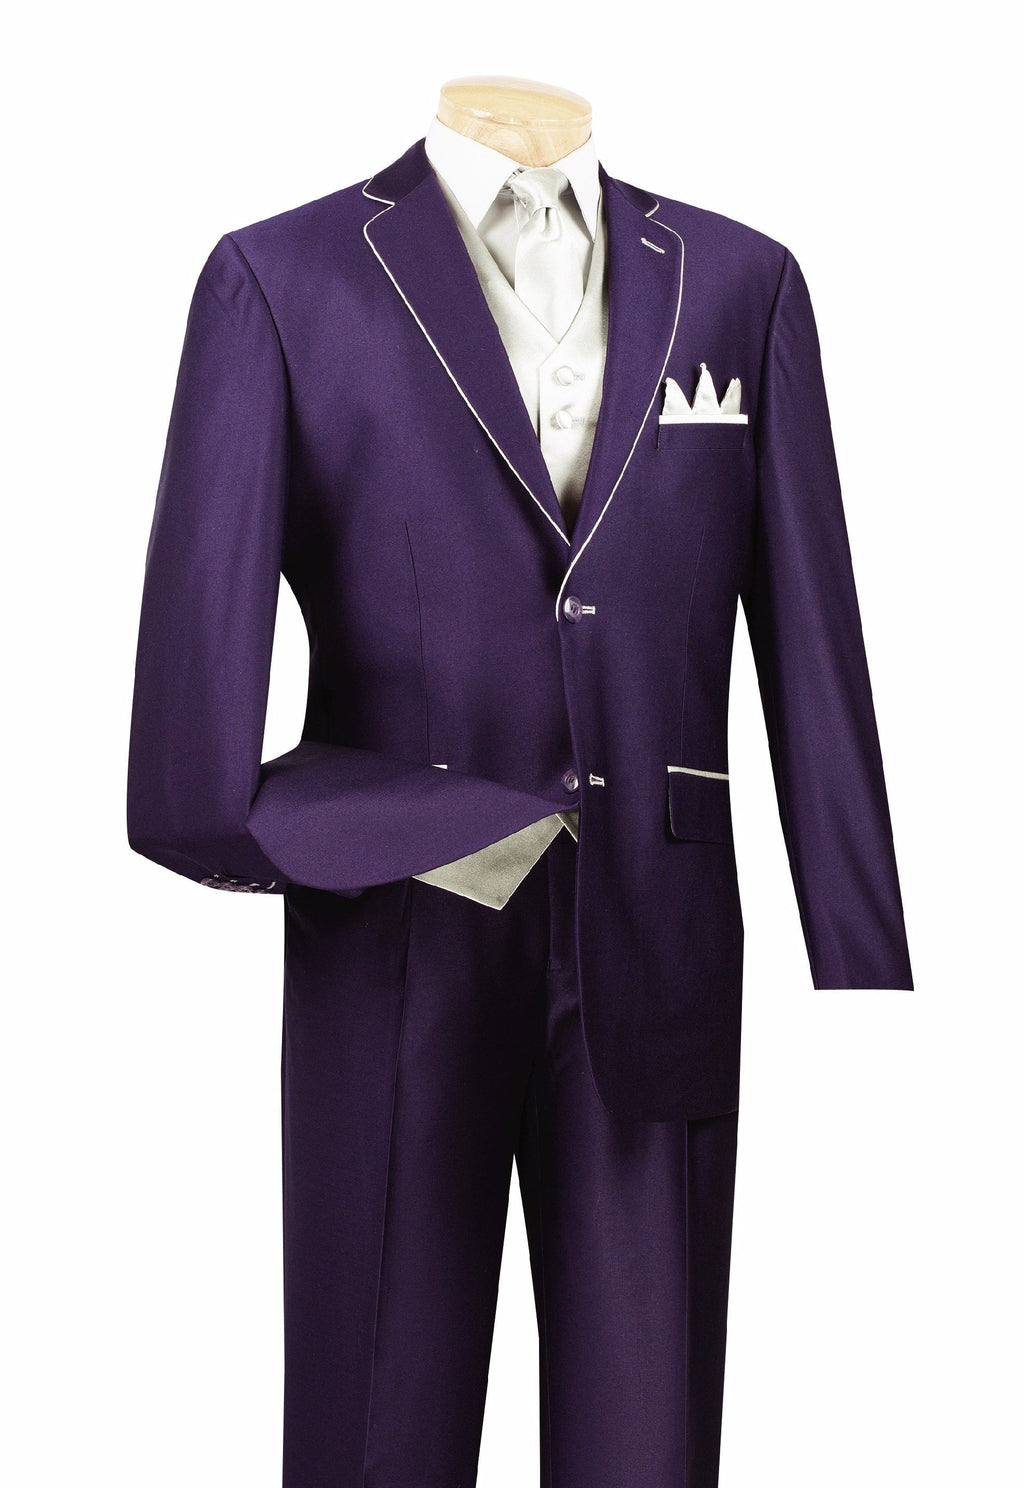 Michelangelo Collection - Shark Skin Classic Fit 3 Pieces 2 Buttons Single Pleated Pants Purple - SUITS OUTLETS